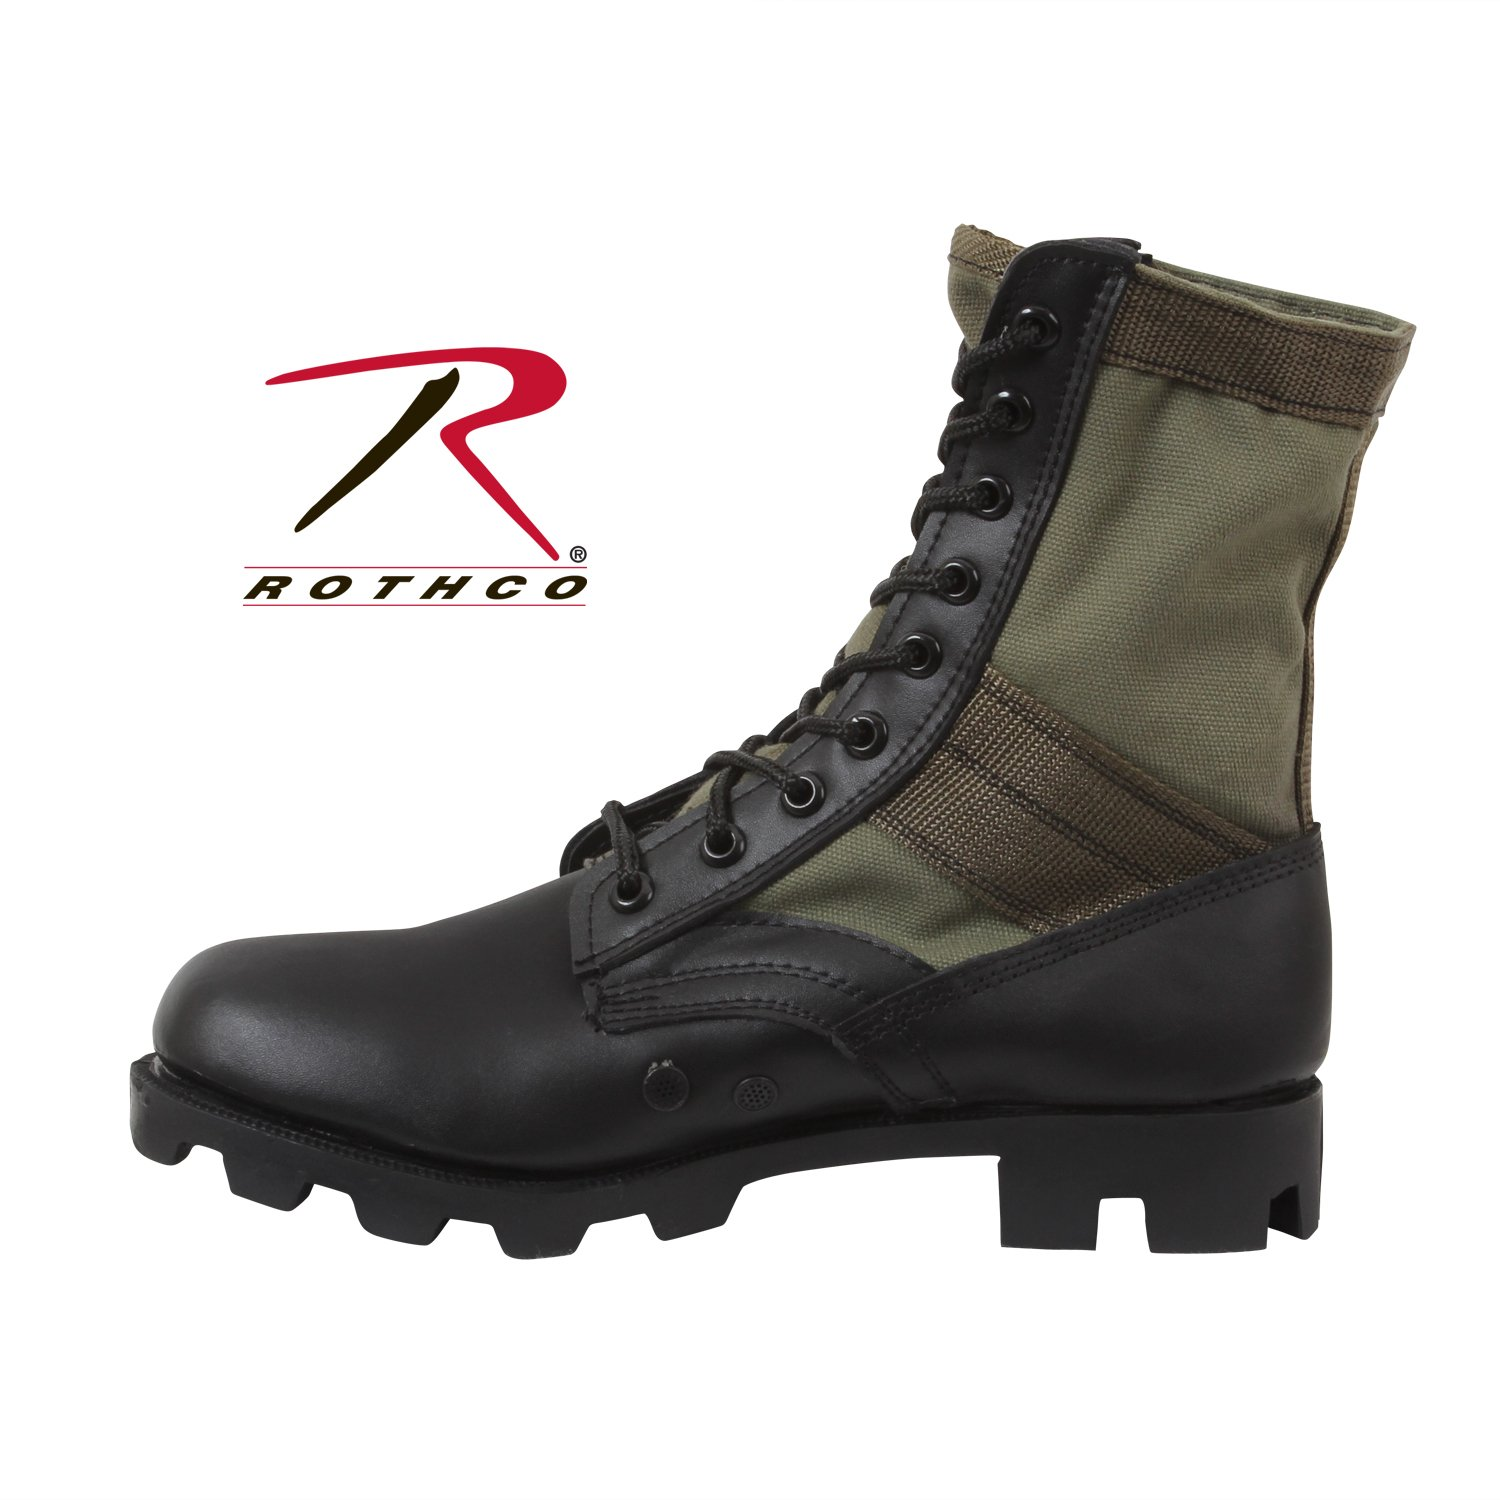 ROTHCO GI TYPE JUNGLE BOOT / 8'' - OD(Olive Drab-7-Wide) by Rothco